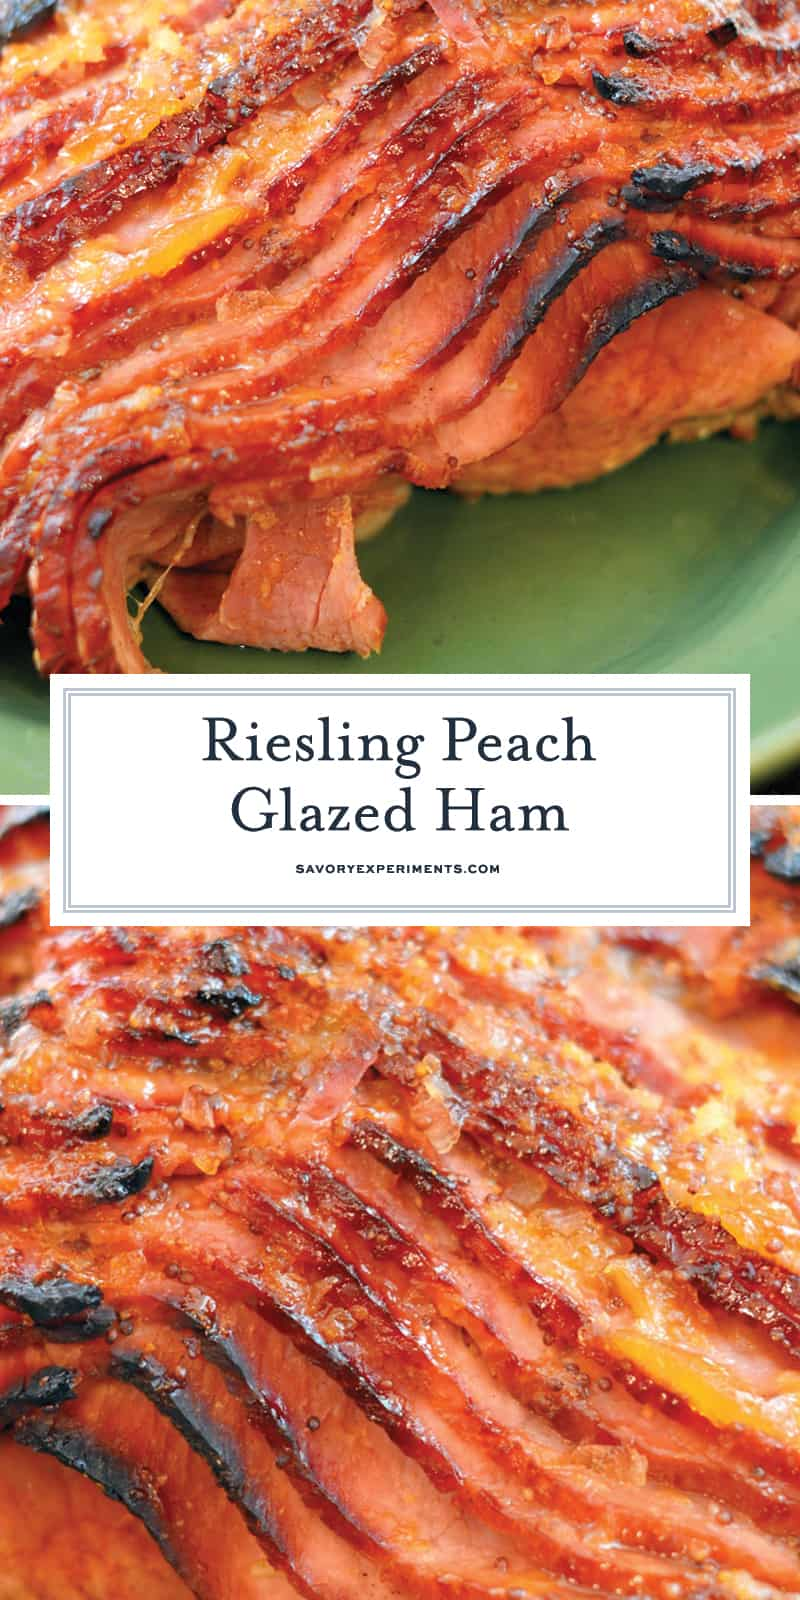 This Riesling Peach Glazed Ham Recipe is a beautifully caramelized baked ham with peach brown sugar glaze. This glazed ham feeds a crowd and is easy to make! #hamrecipes #hamglaze #bakedham www.savoryexperiments.com